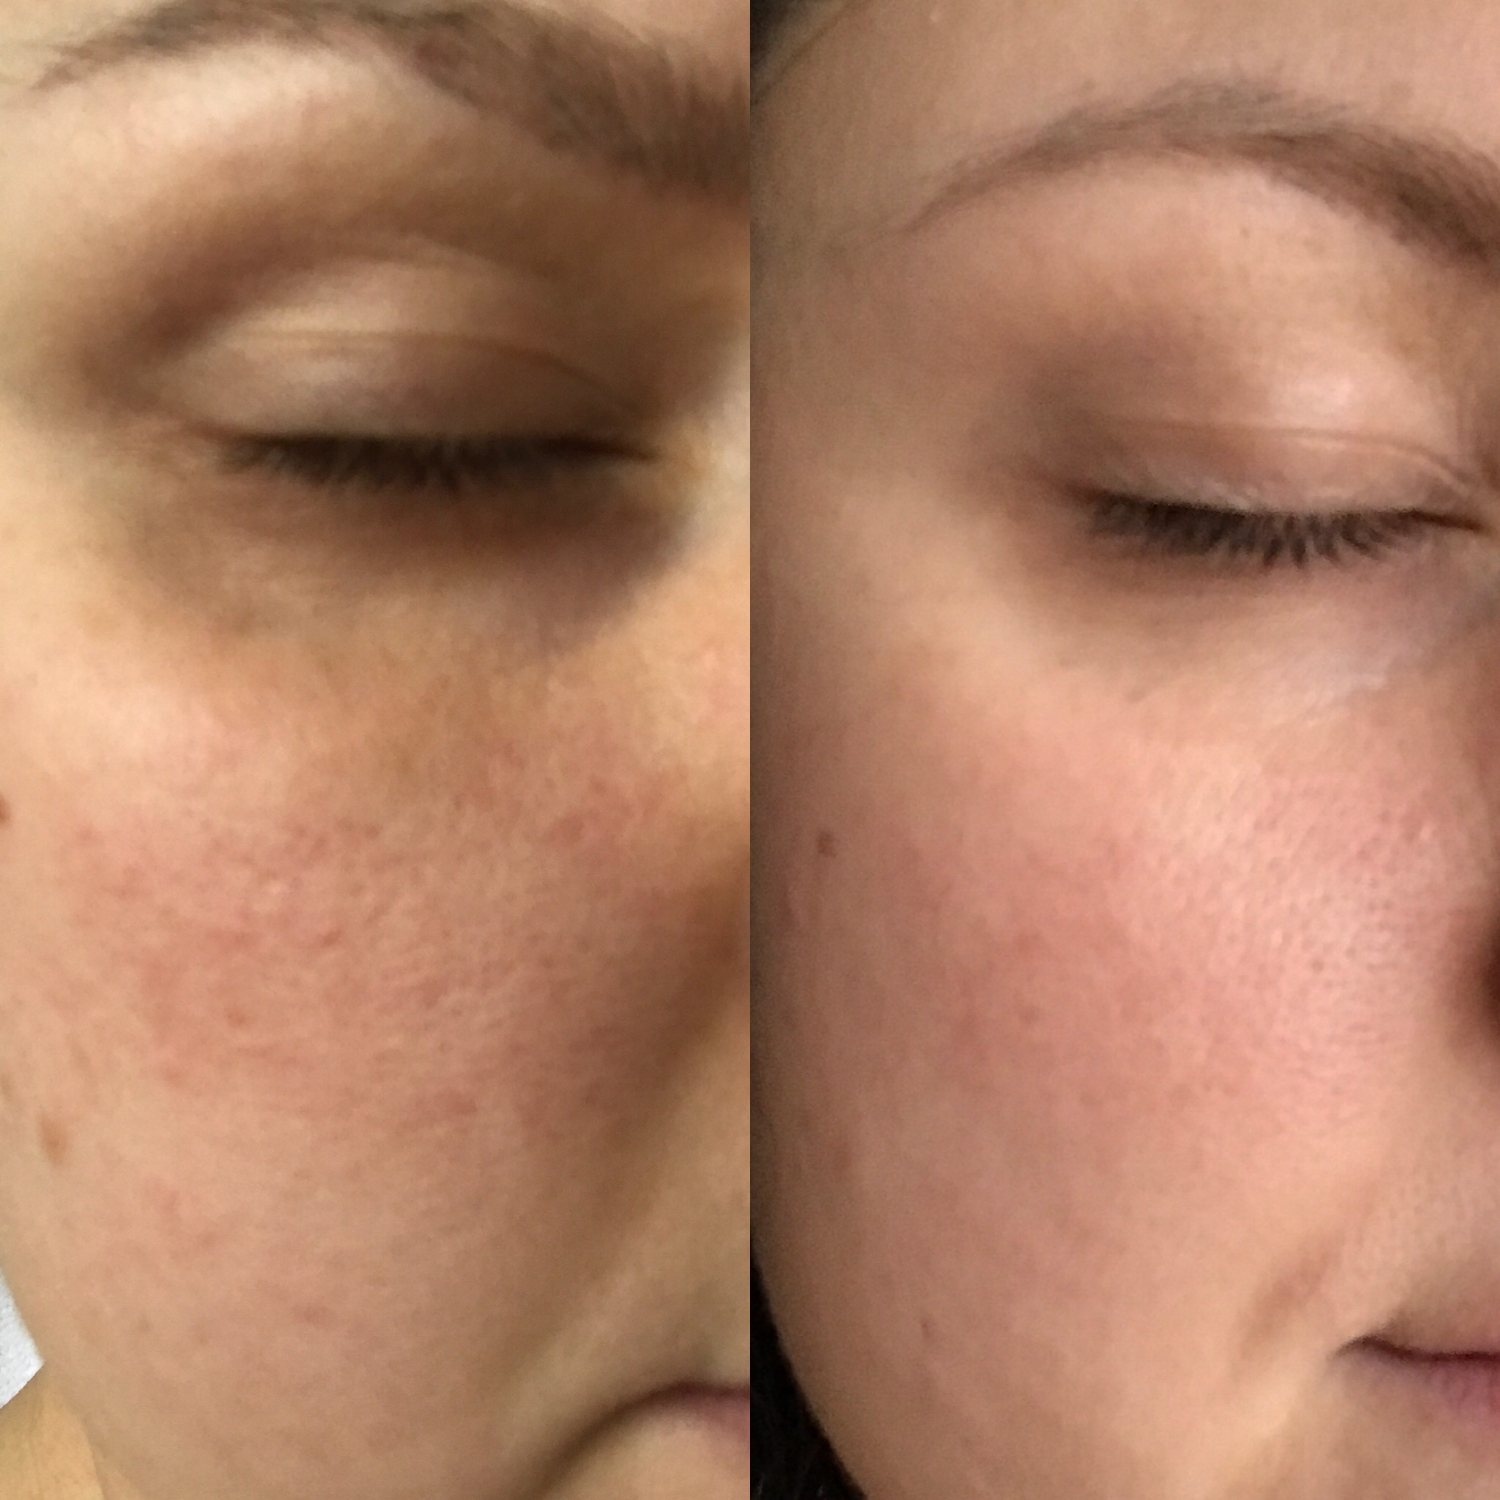 Before & After  Don't look too closely, gosh this is embarrassing, but as you can see my skin looks much smoother.